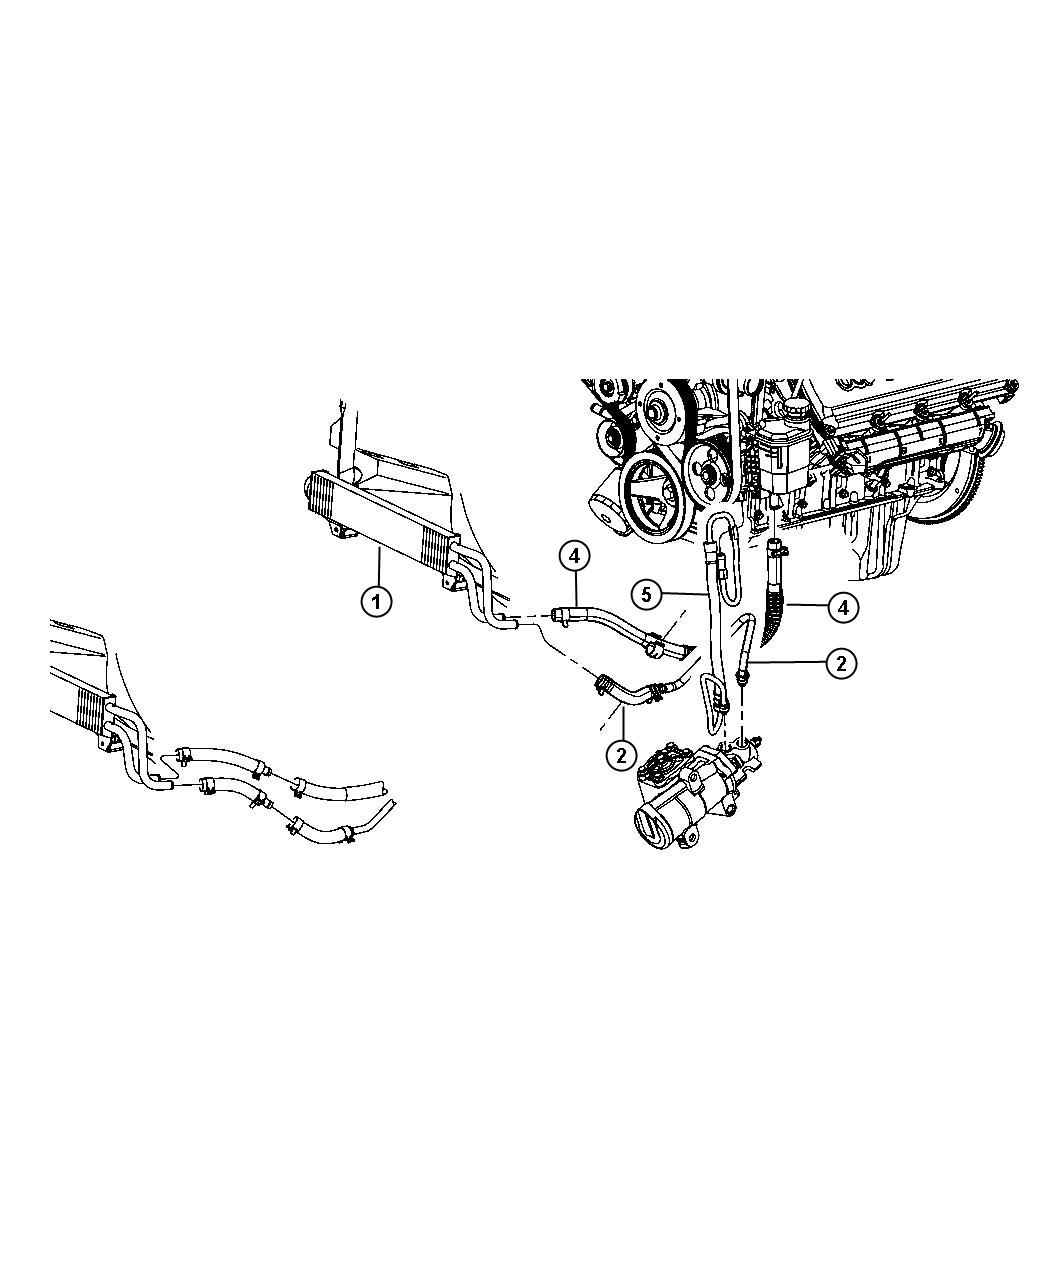 Dodge Ram Cooler Power Steering After 5 09